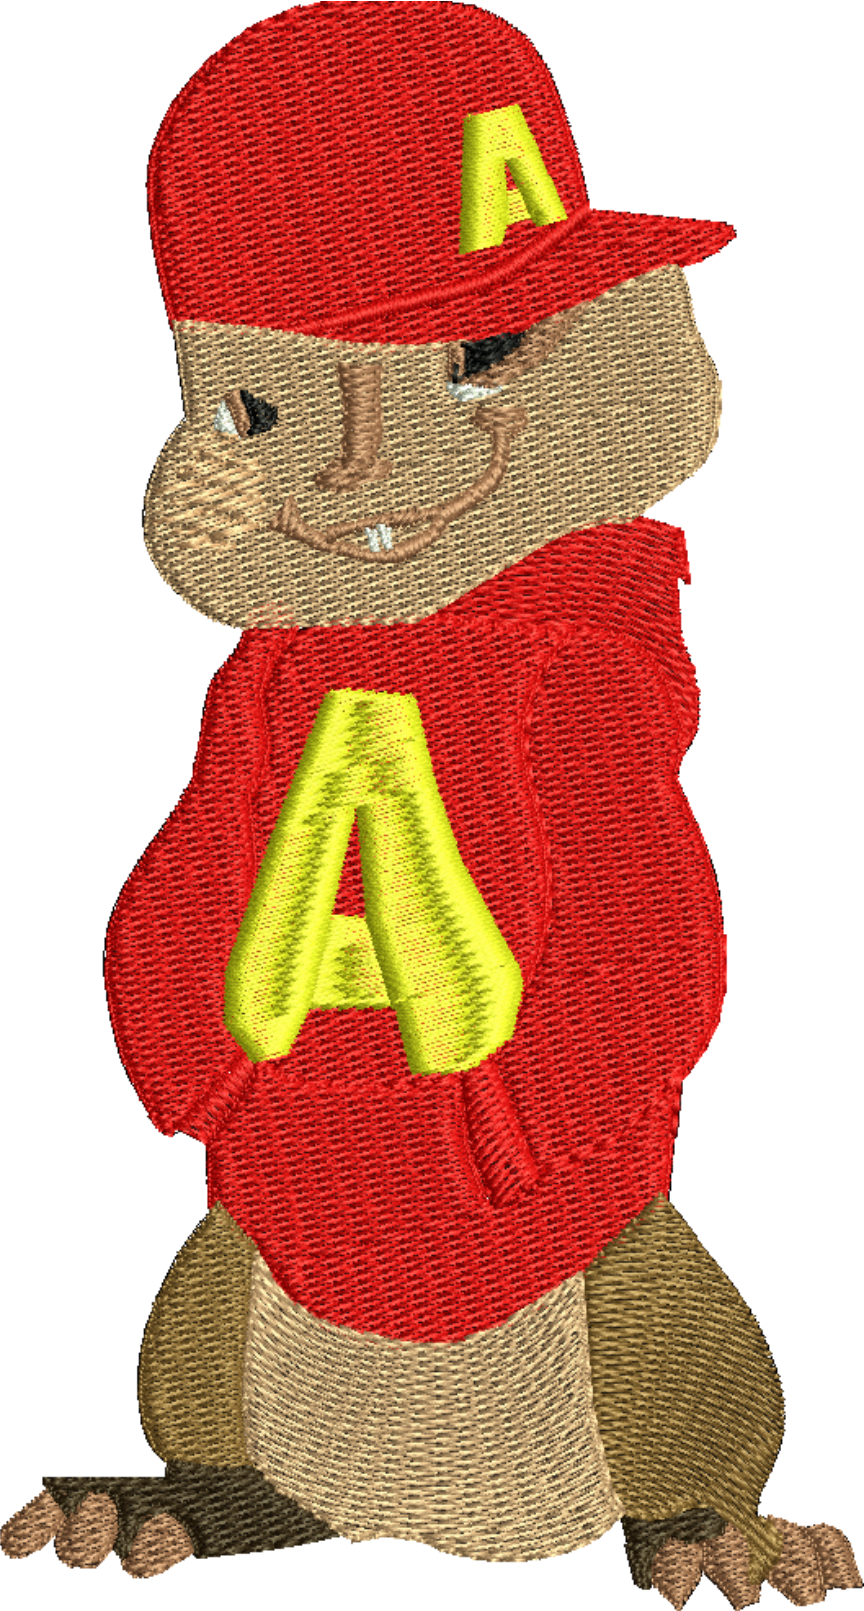 Chipmunk 2-Chipmunks cartoons Christmas chipmunks machine embroidery stitchedinfaith.com